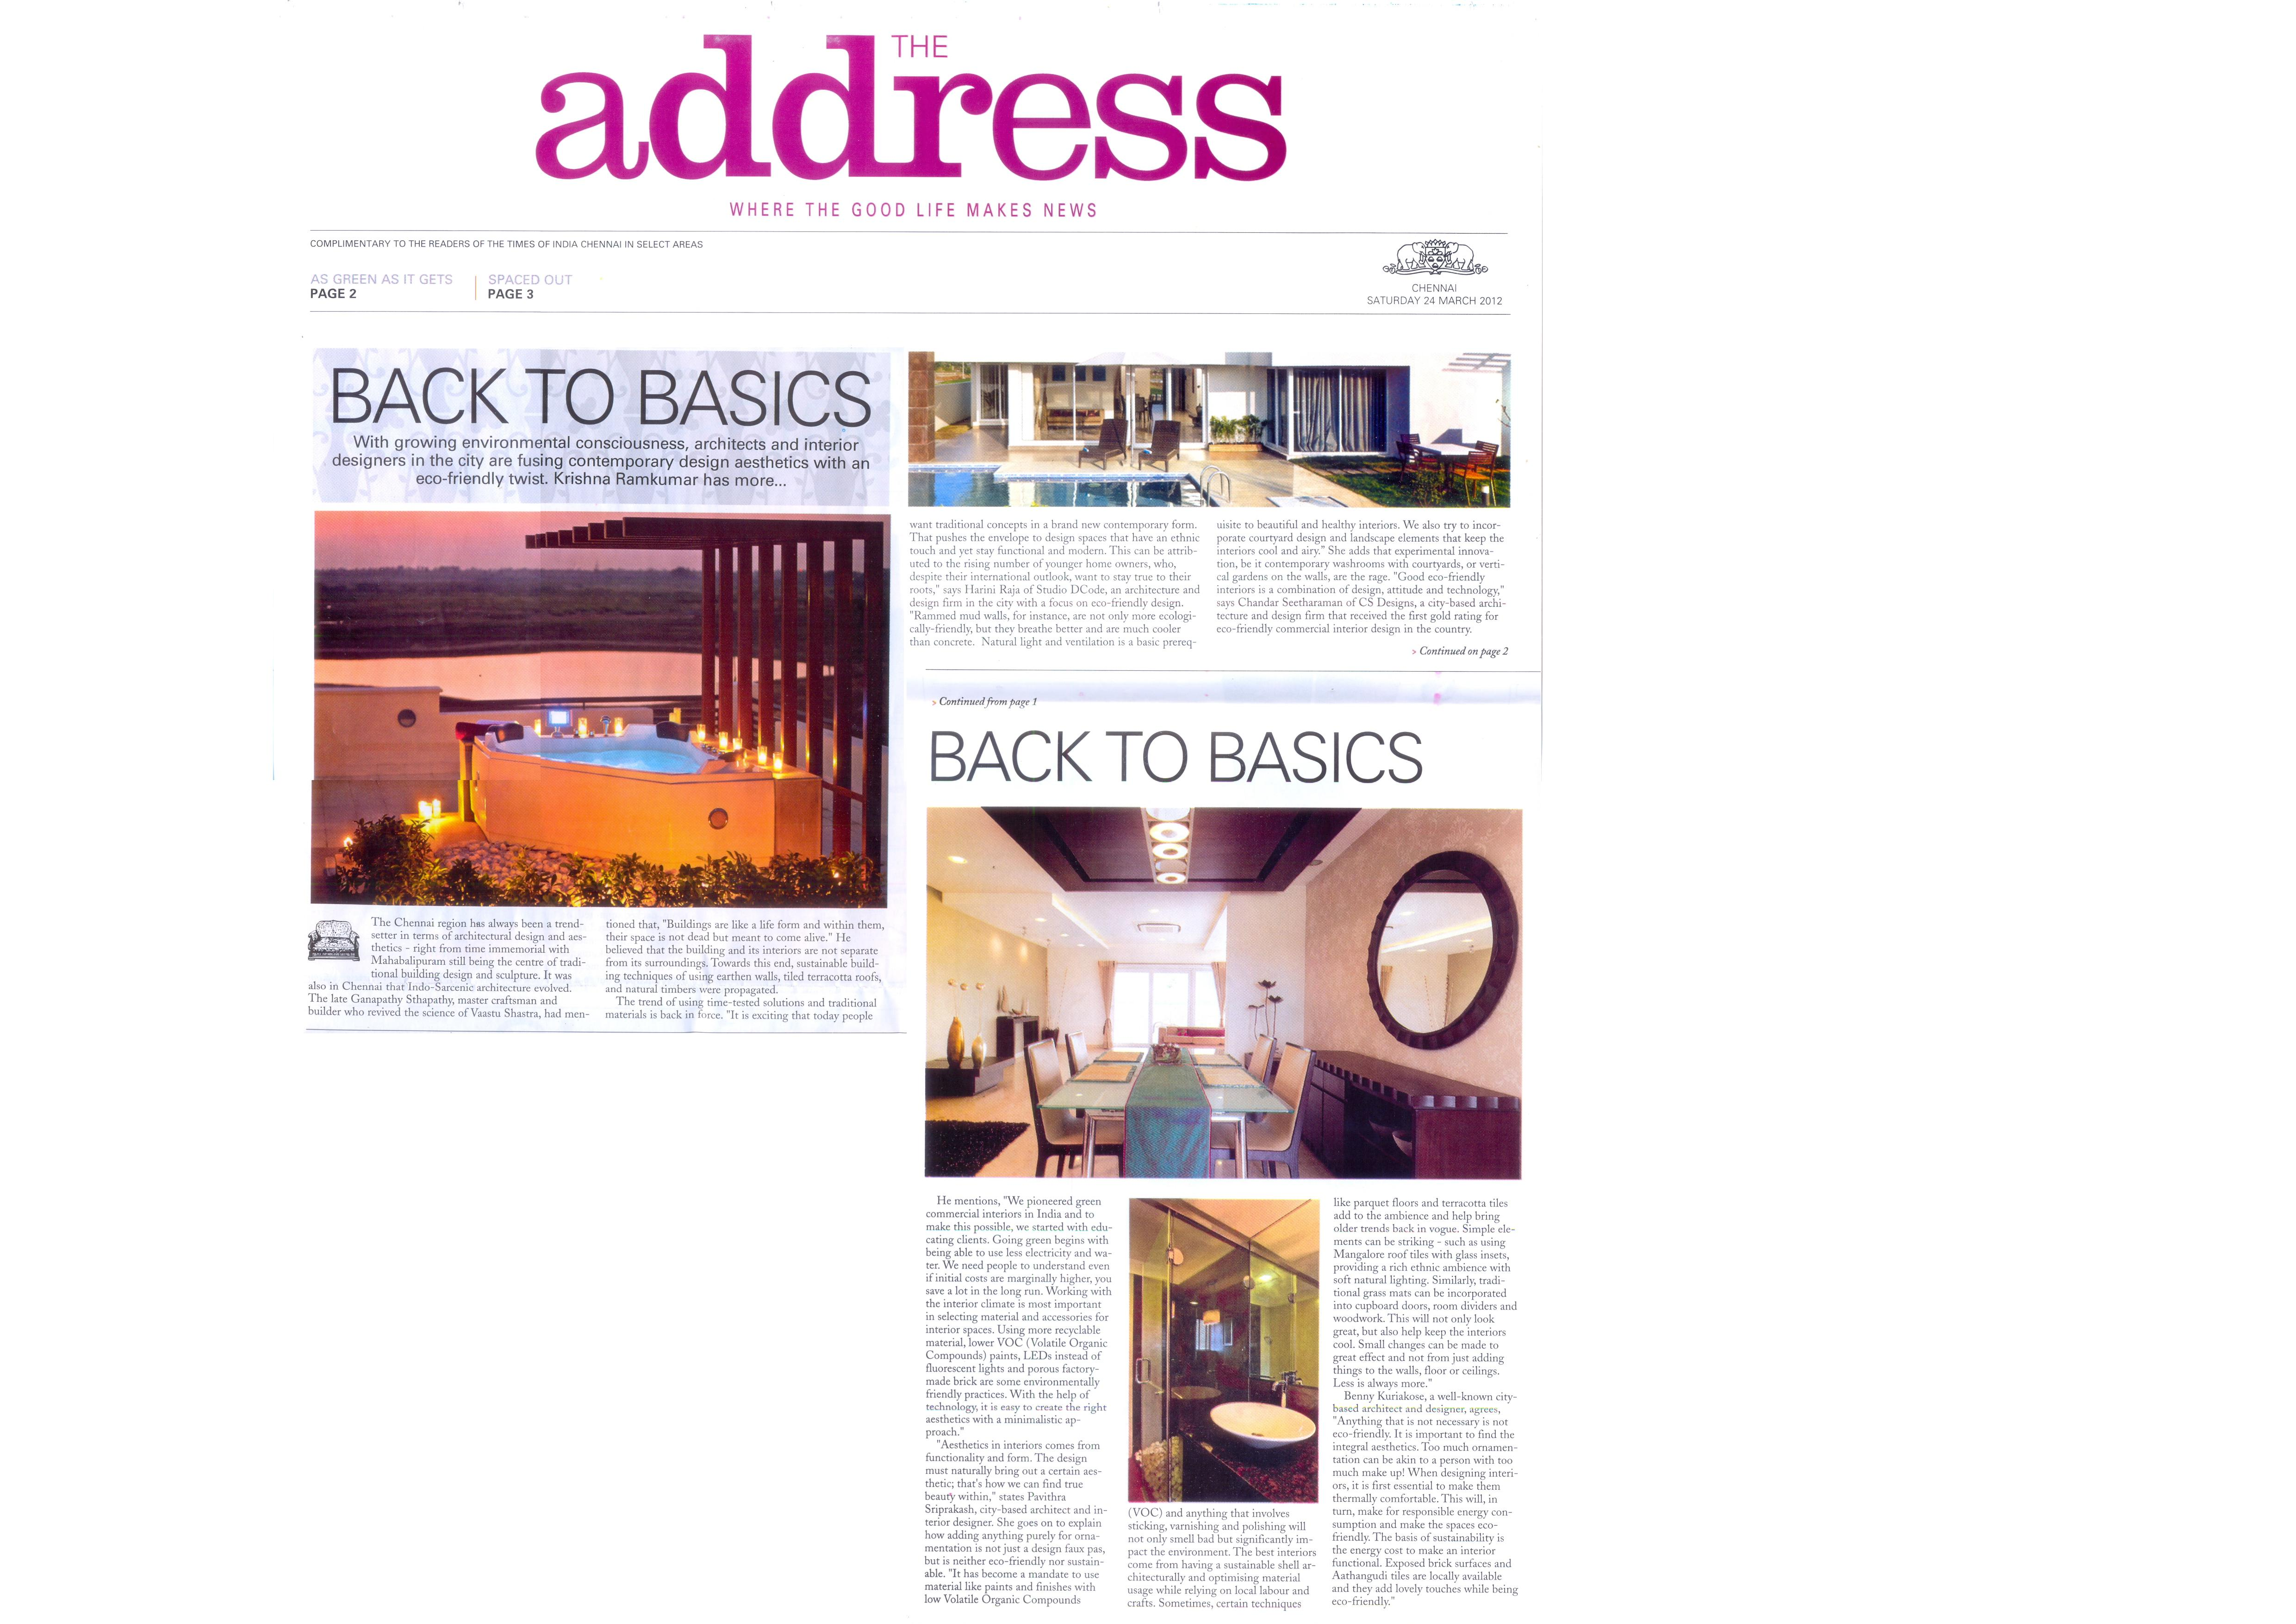 Times of India, 24 March 2012: BACK TO BASICS